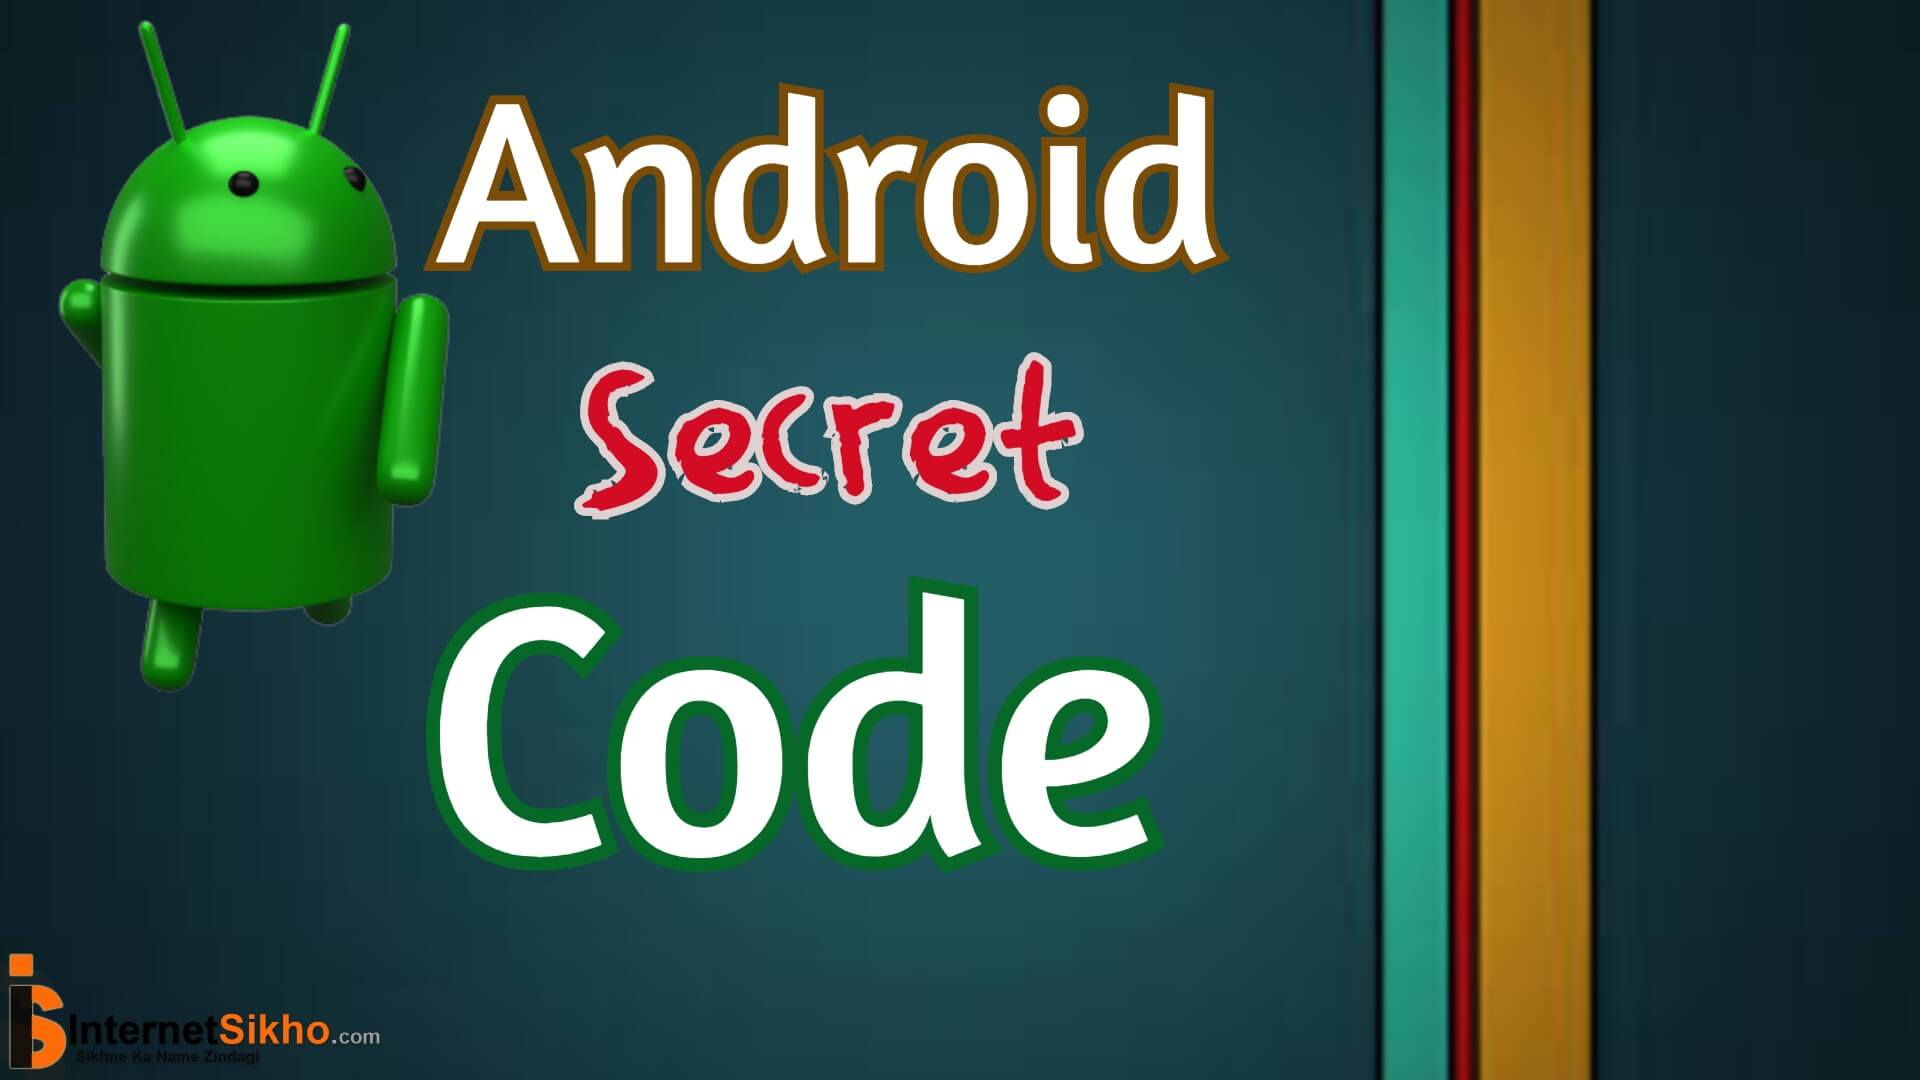 ANDROID SECRET CODE